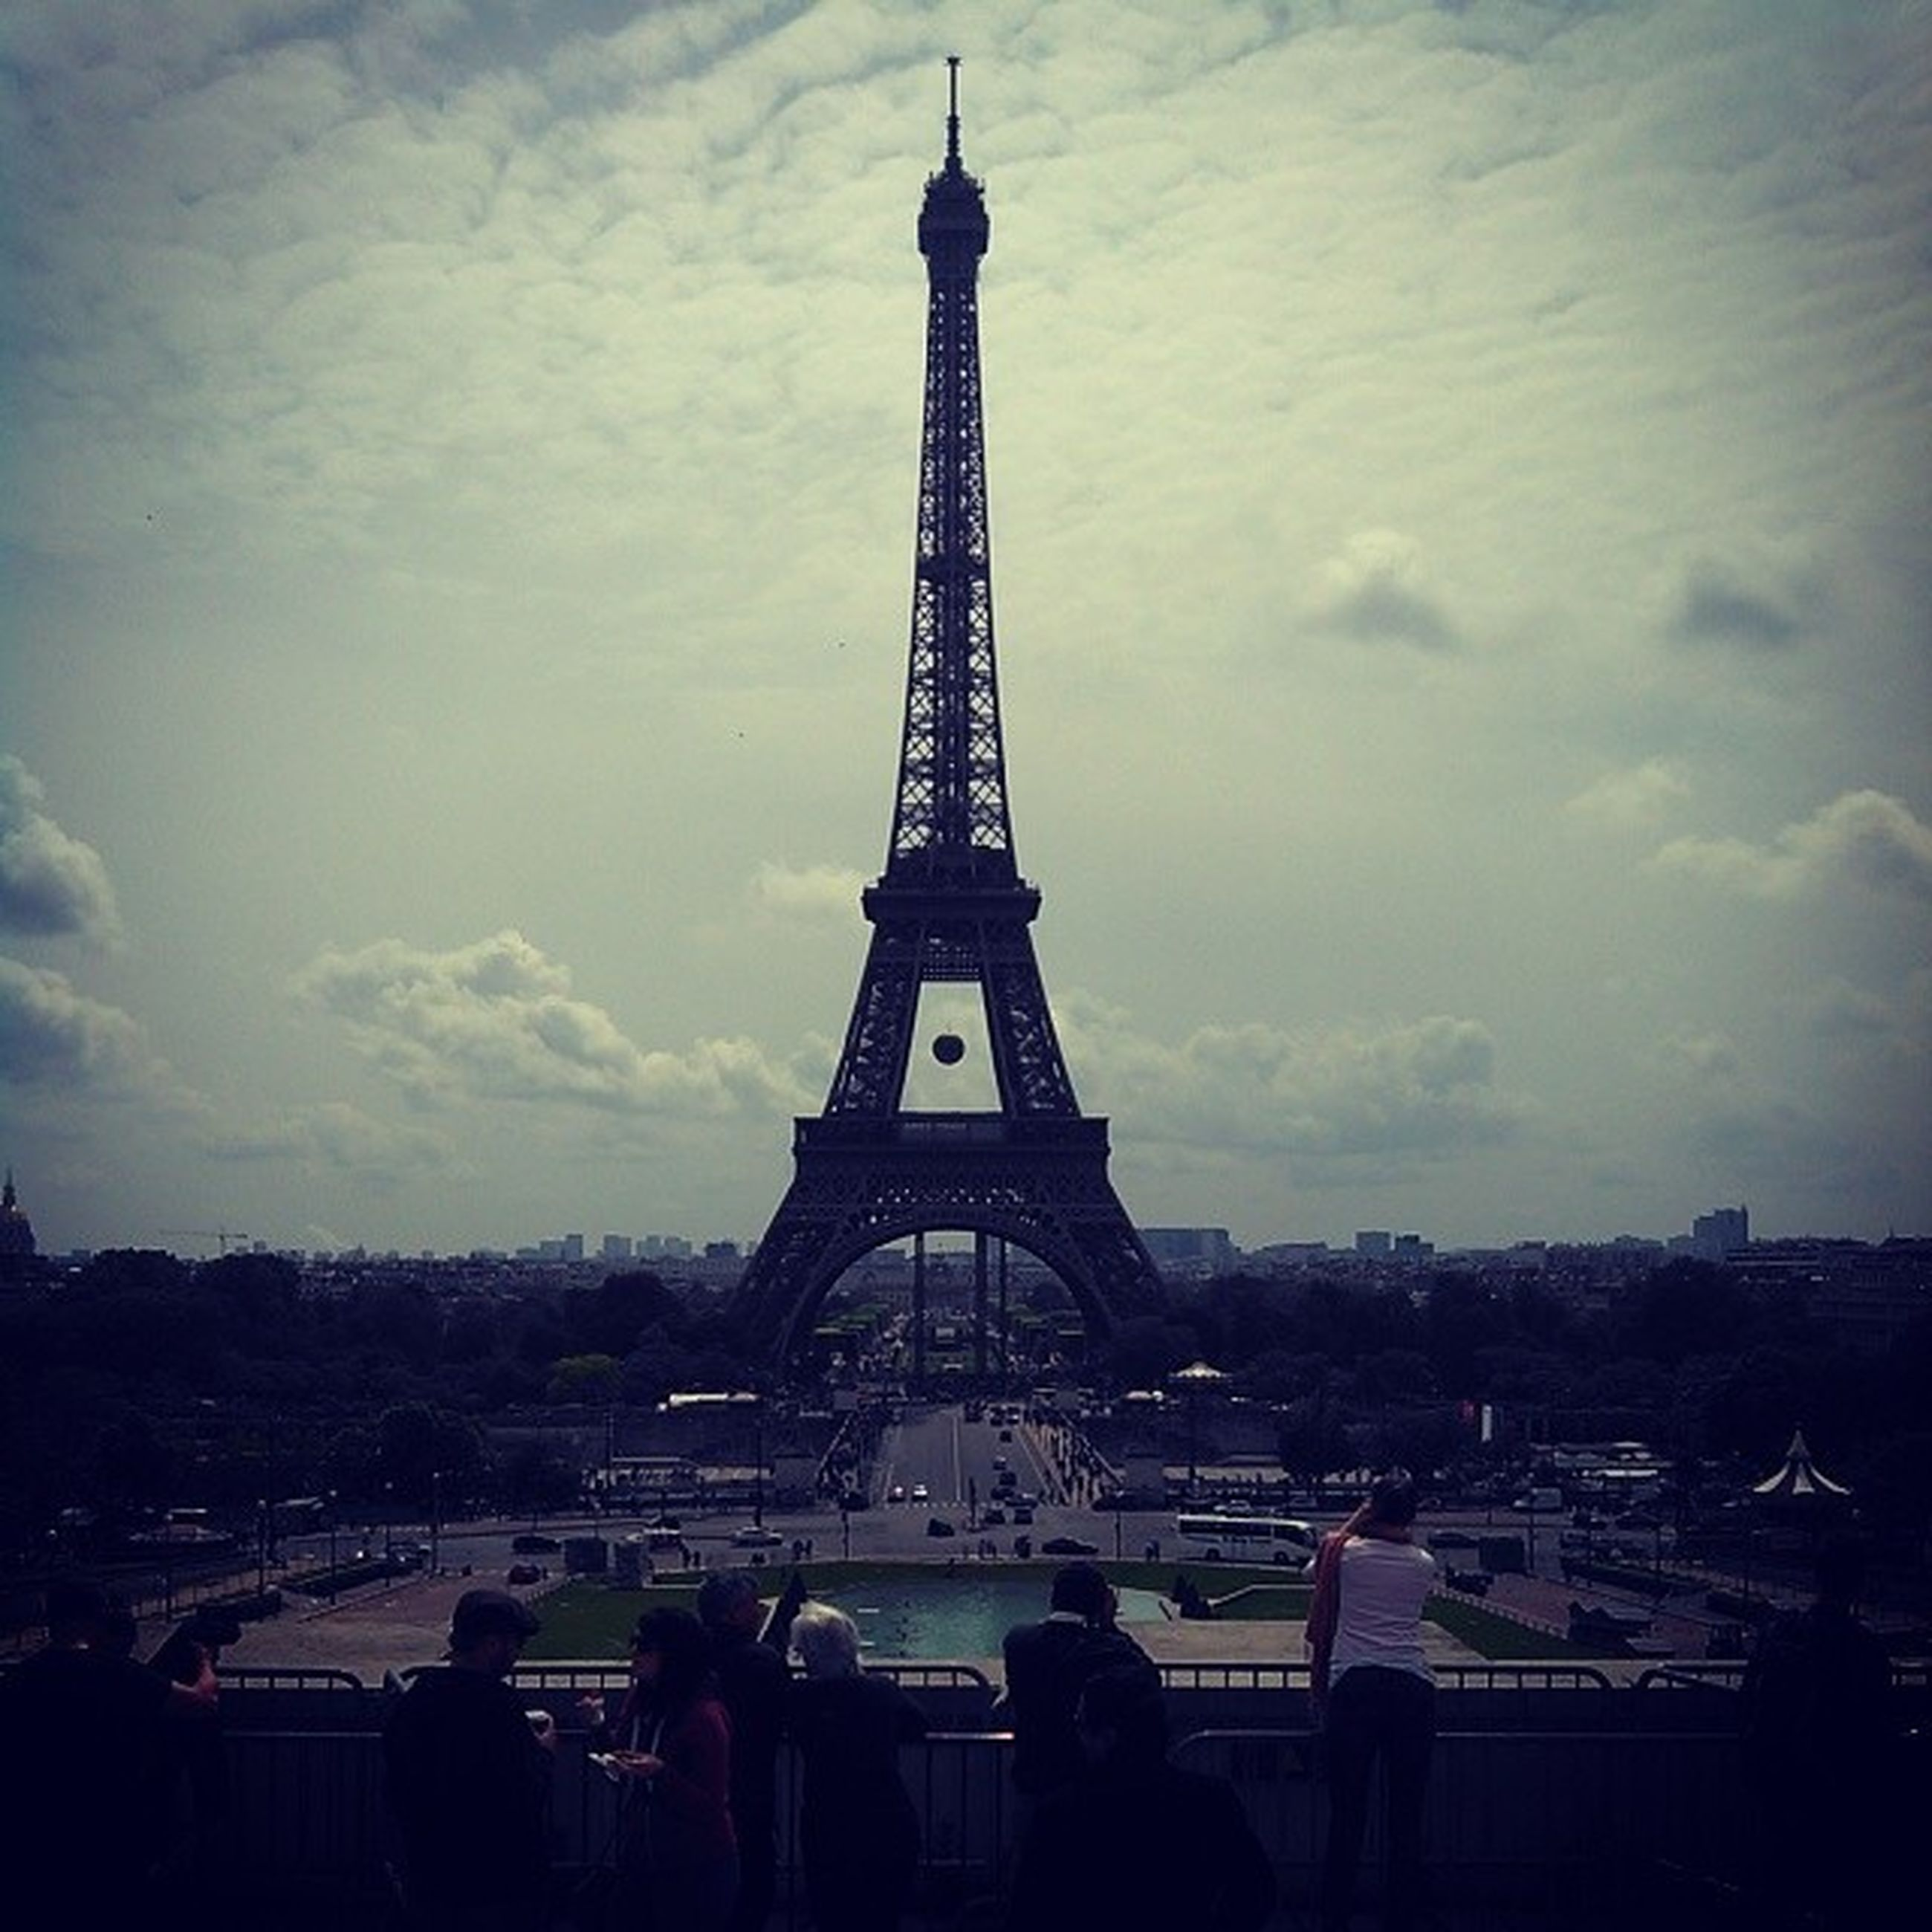 eiffel tower, architecture, built structure, famous place, international landmark, tower, tall - high, capital cities, travel destinations, tourism, culture, sky, building exterior, city, travel, history, tall, architectural feature, cloud - sky, city life